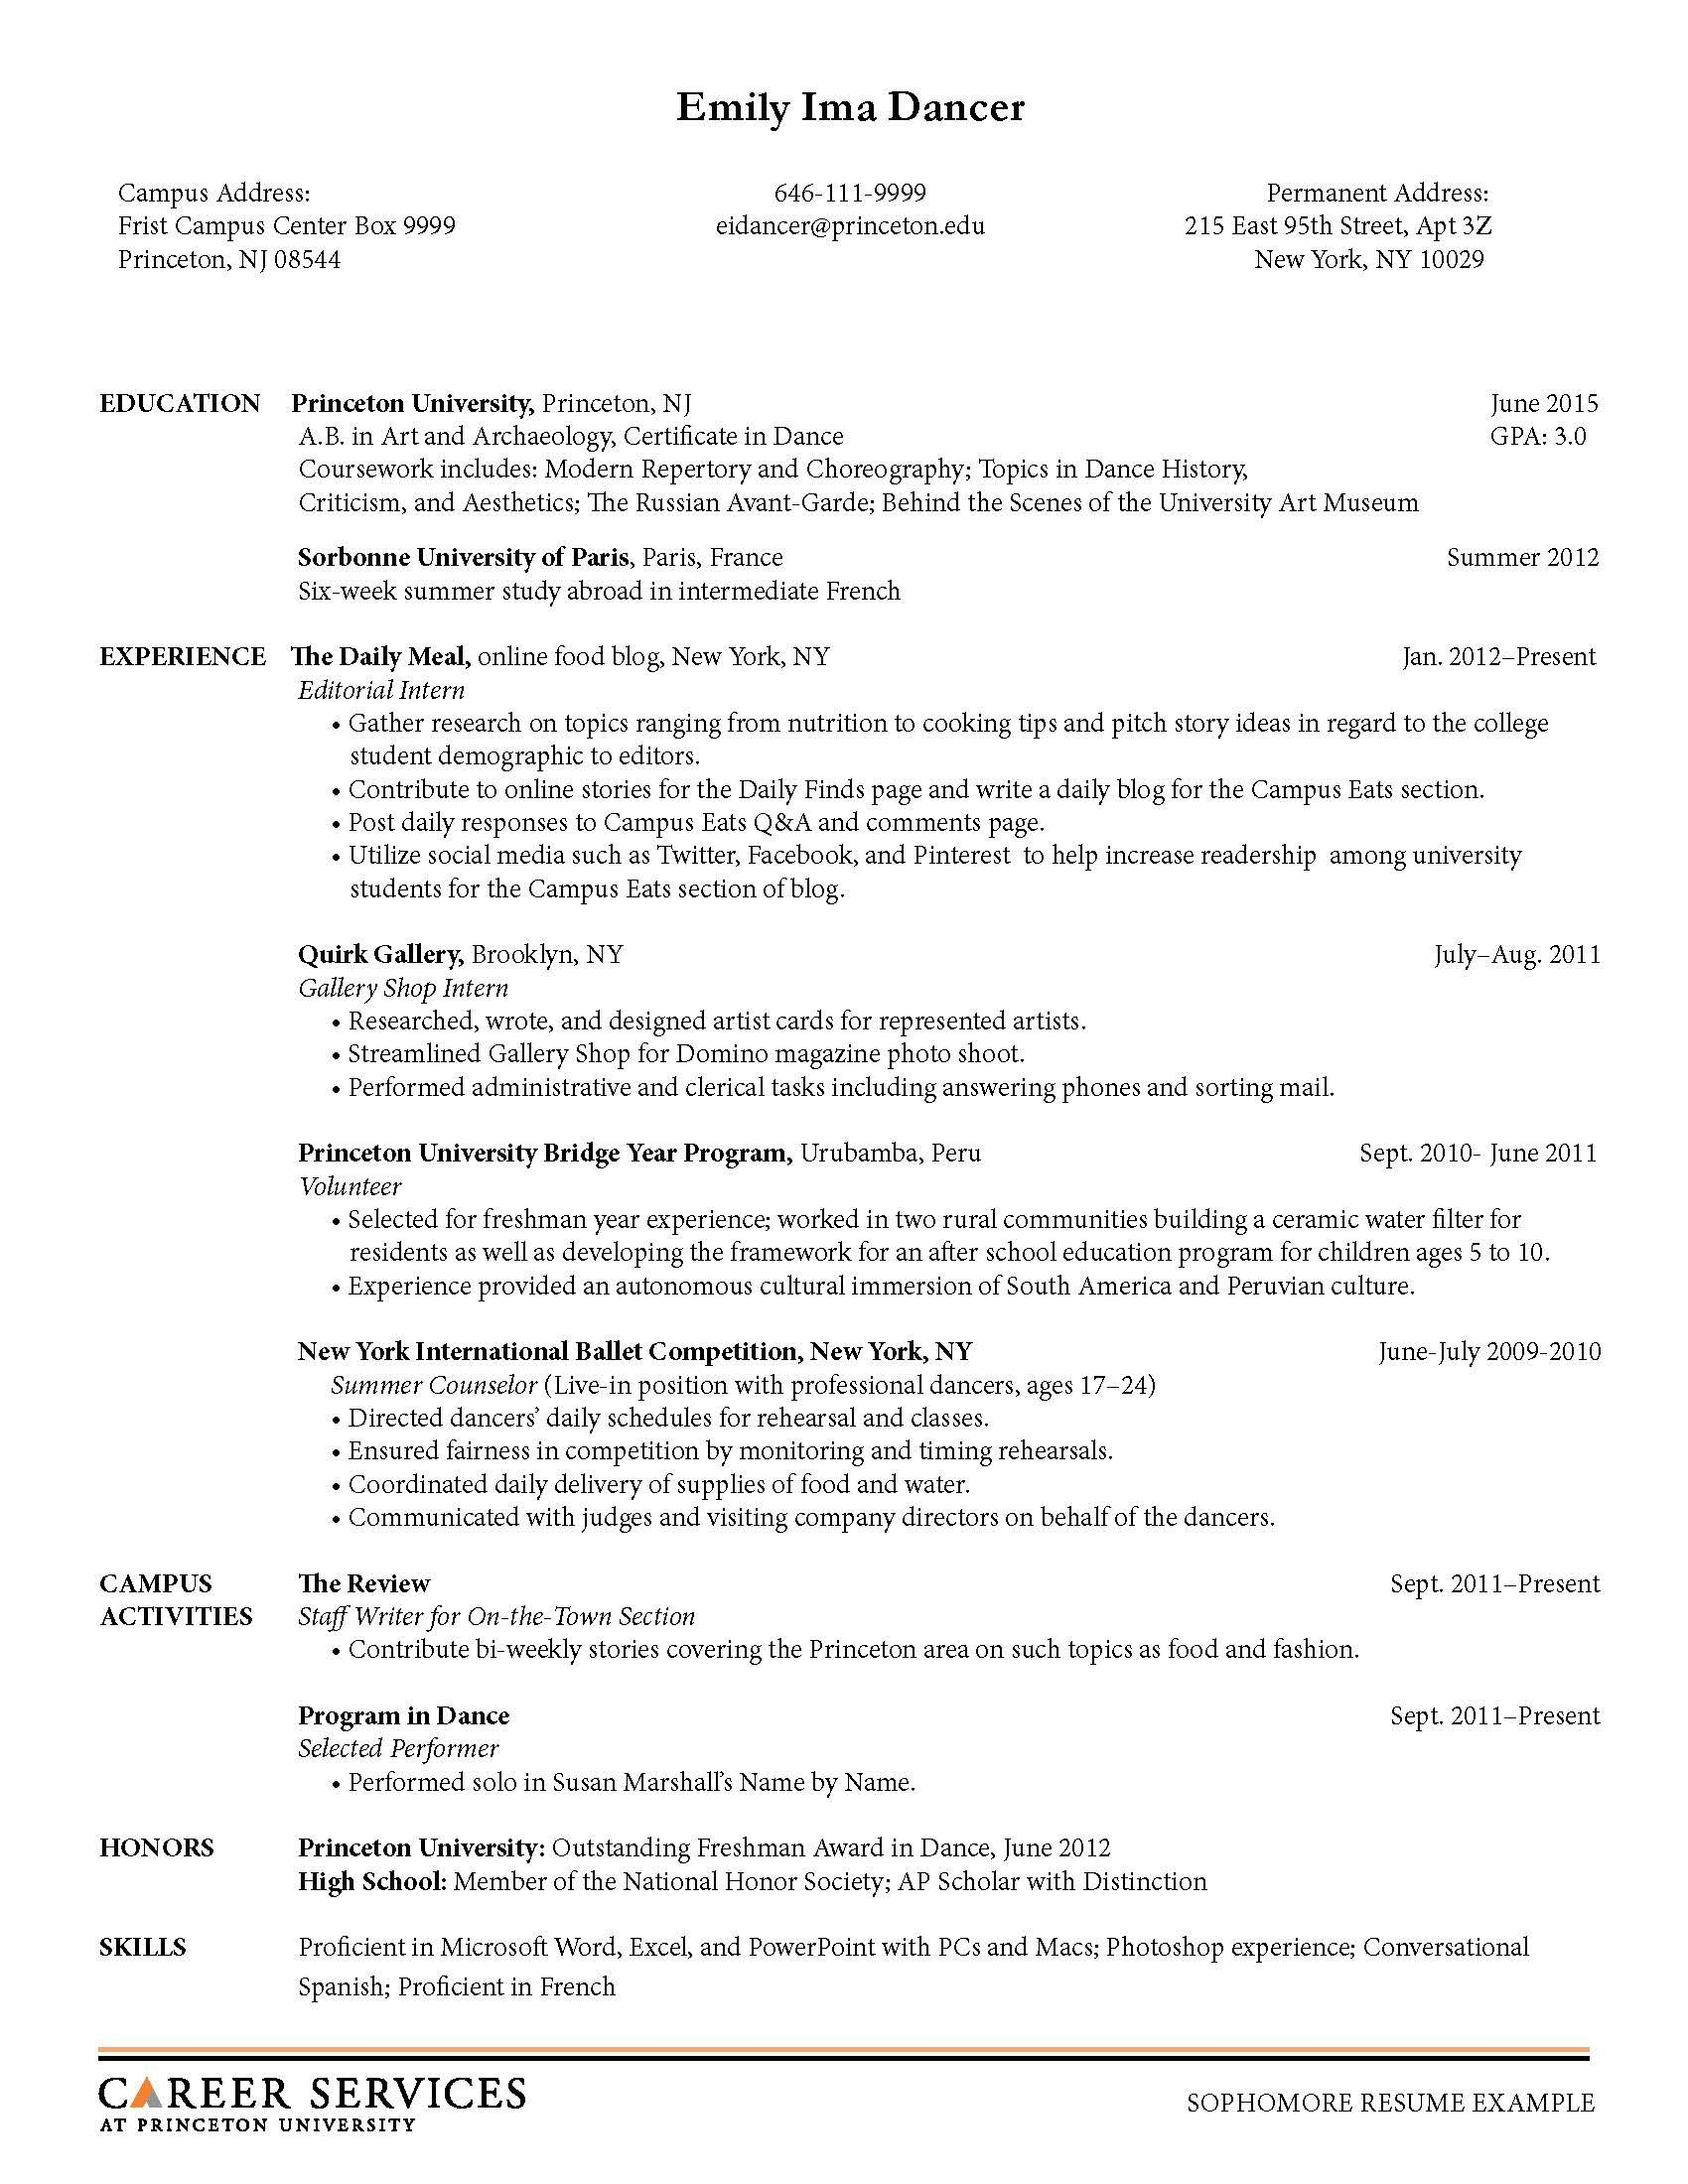 Opposenewapstandardsus  Personable Sample Resume Resume And Career On Pinterest With Fair Tom Brady College Resume Besides Sample Office Assistant Resume Furthermore Sample Of Objective For Resume With Astounding Inroads Resume Template Also Programmer Resume Template In Addition Customer Service Description For Resume And Insurance Underwriter Resume As Well As Graphic Design Skills Resume Additionally Business Resume Samples From Pinterestcom With Opposenewapstandardsus  Fair Sample Resume Resume And Career On Pinterest With Astounding Tom Brady College Resume Besides Sample Office Assistant Resume Furthermore Sample Of Objective For Resume And Personable Inroads Resume Template Also Programmer Resume Template In Addition Customer Service Description For Resume From Pinterestcom